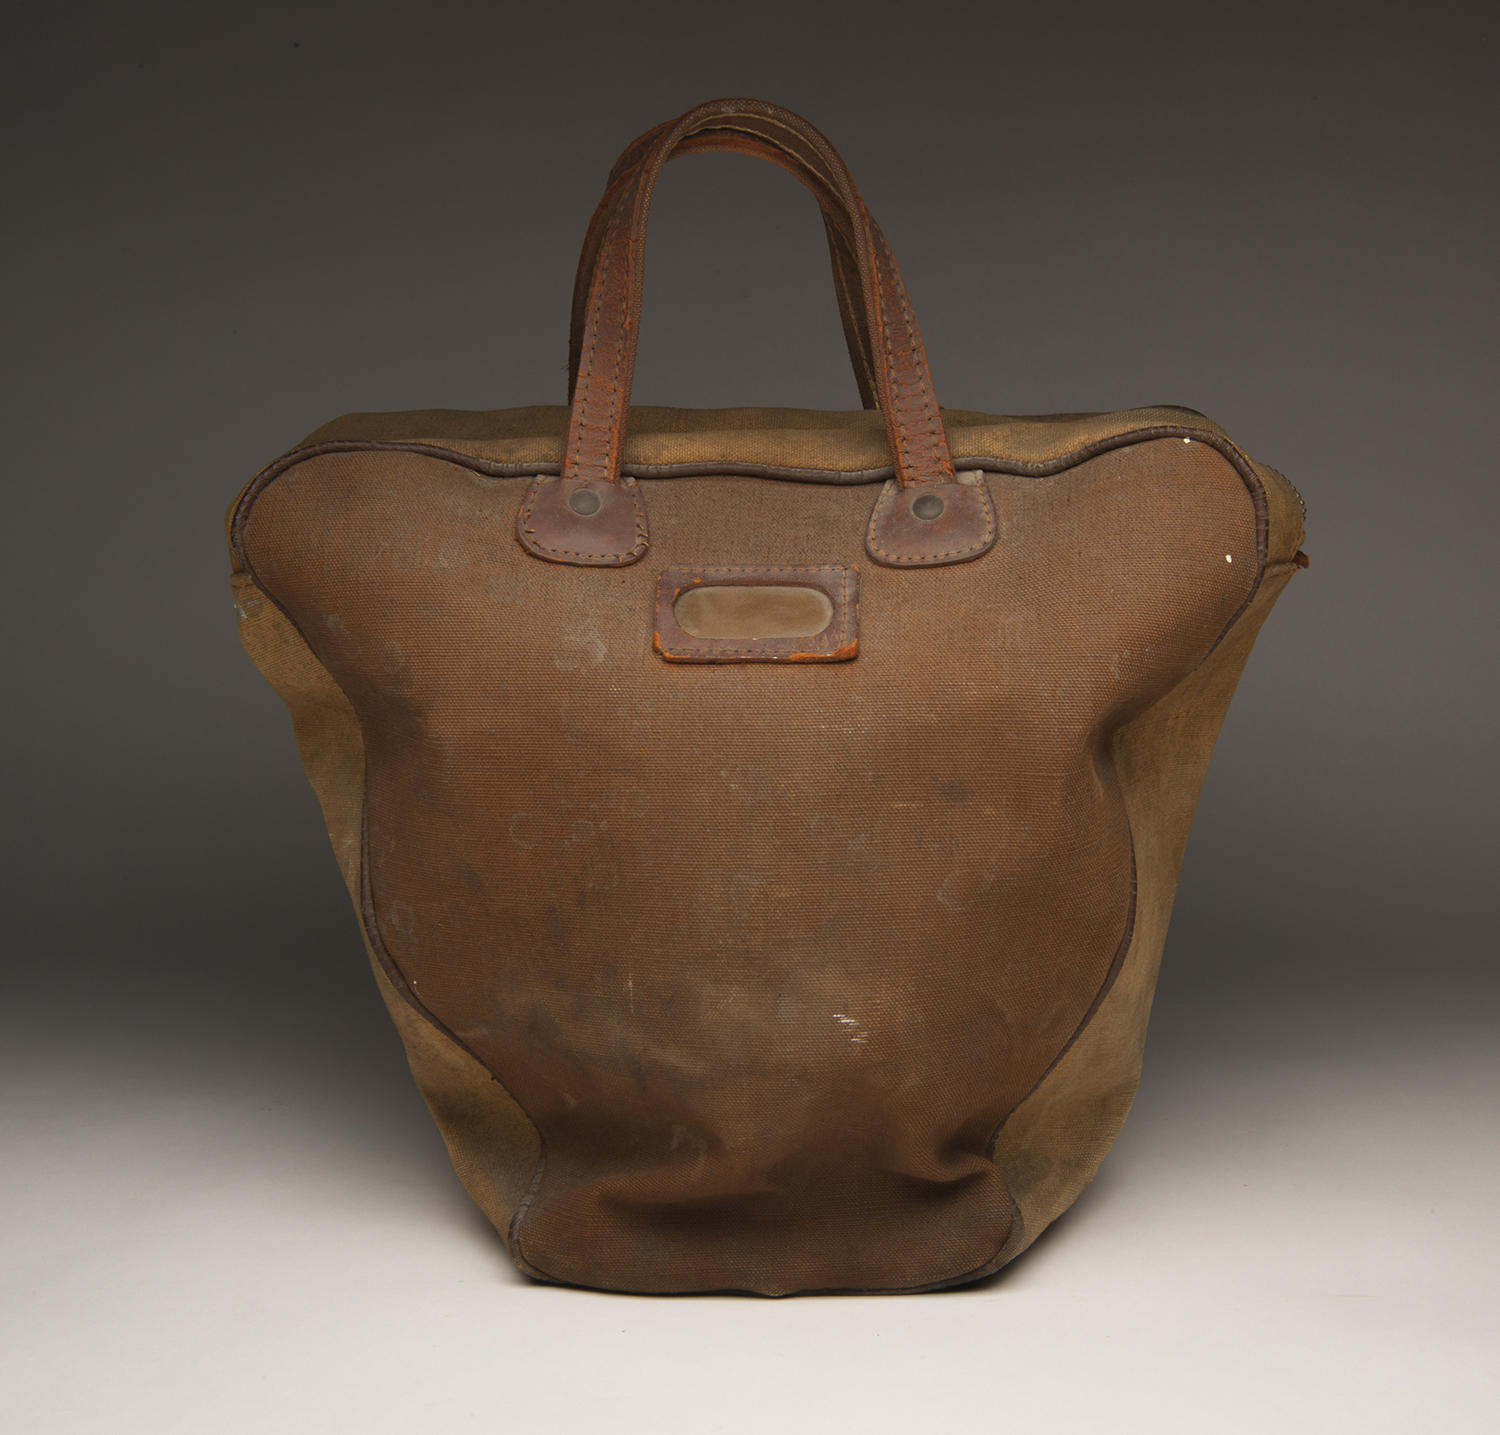 One Of Two Bowling Balls With Accompanying Bags In The Museum Collection This Bag Needs Conservation Treatment Milo Jr National